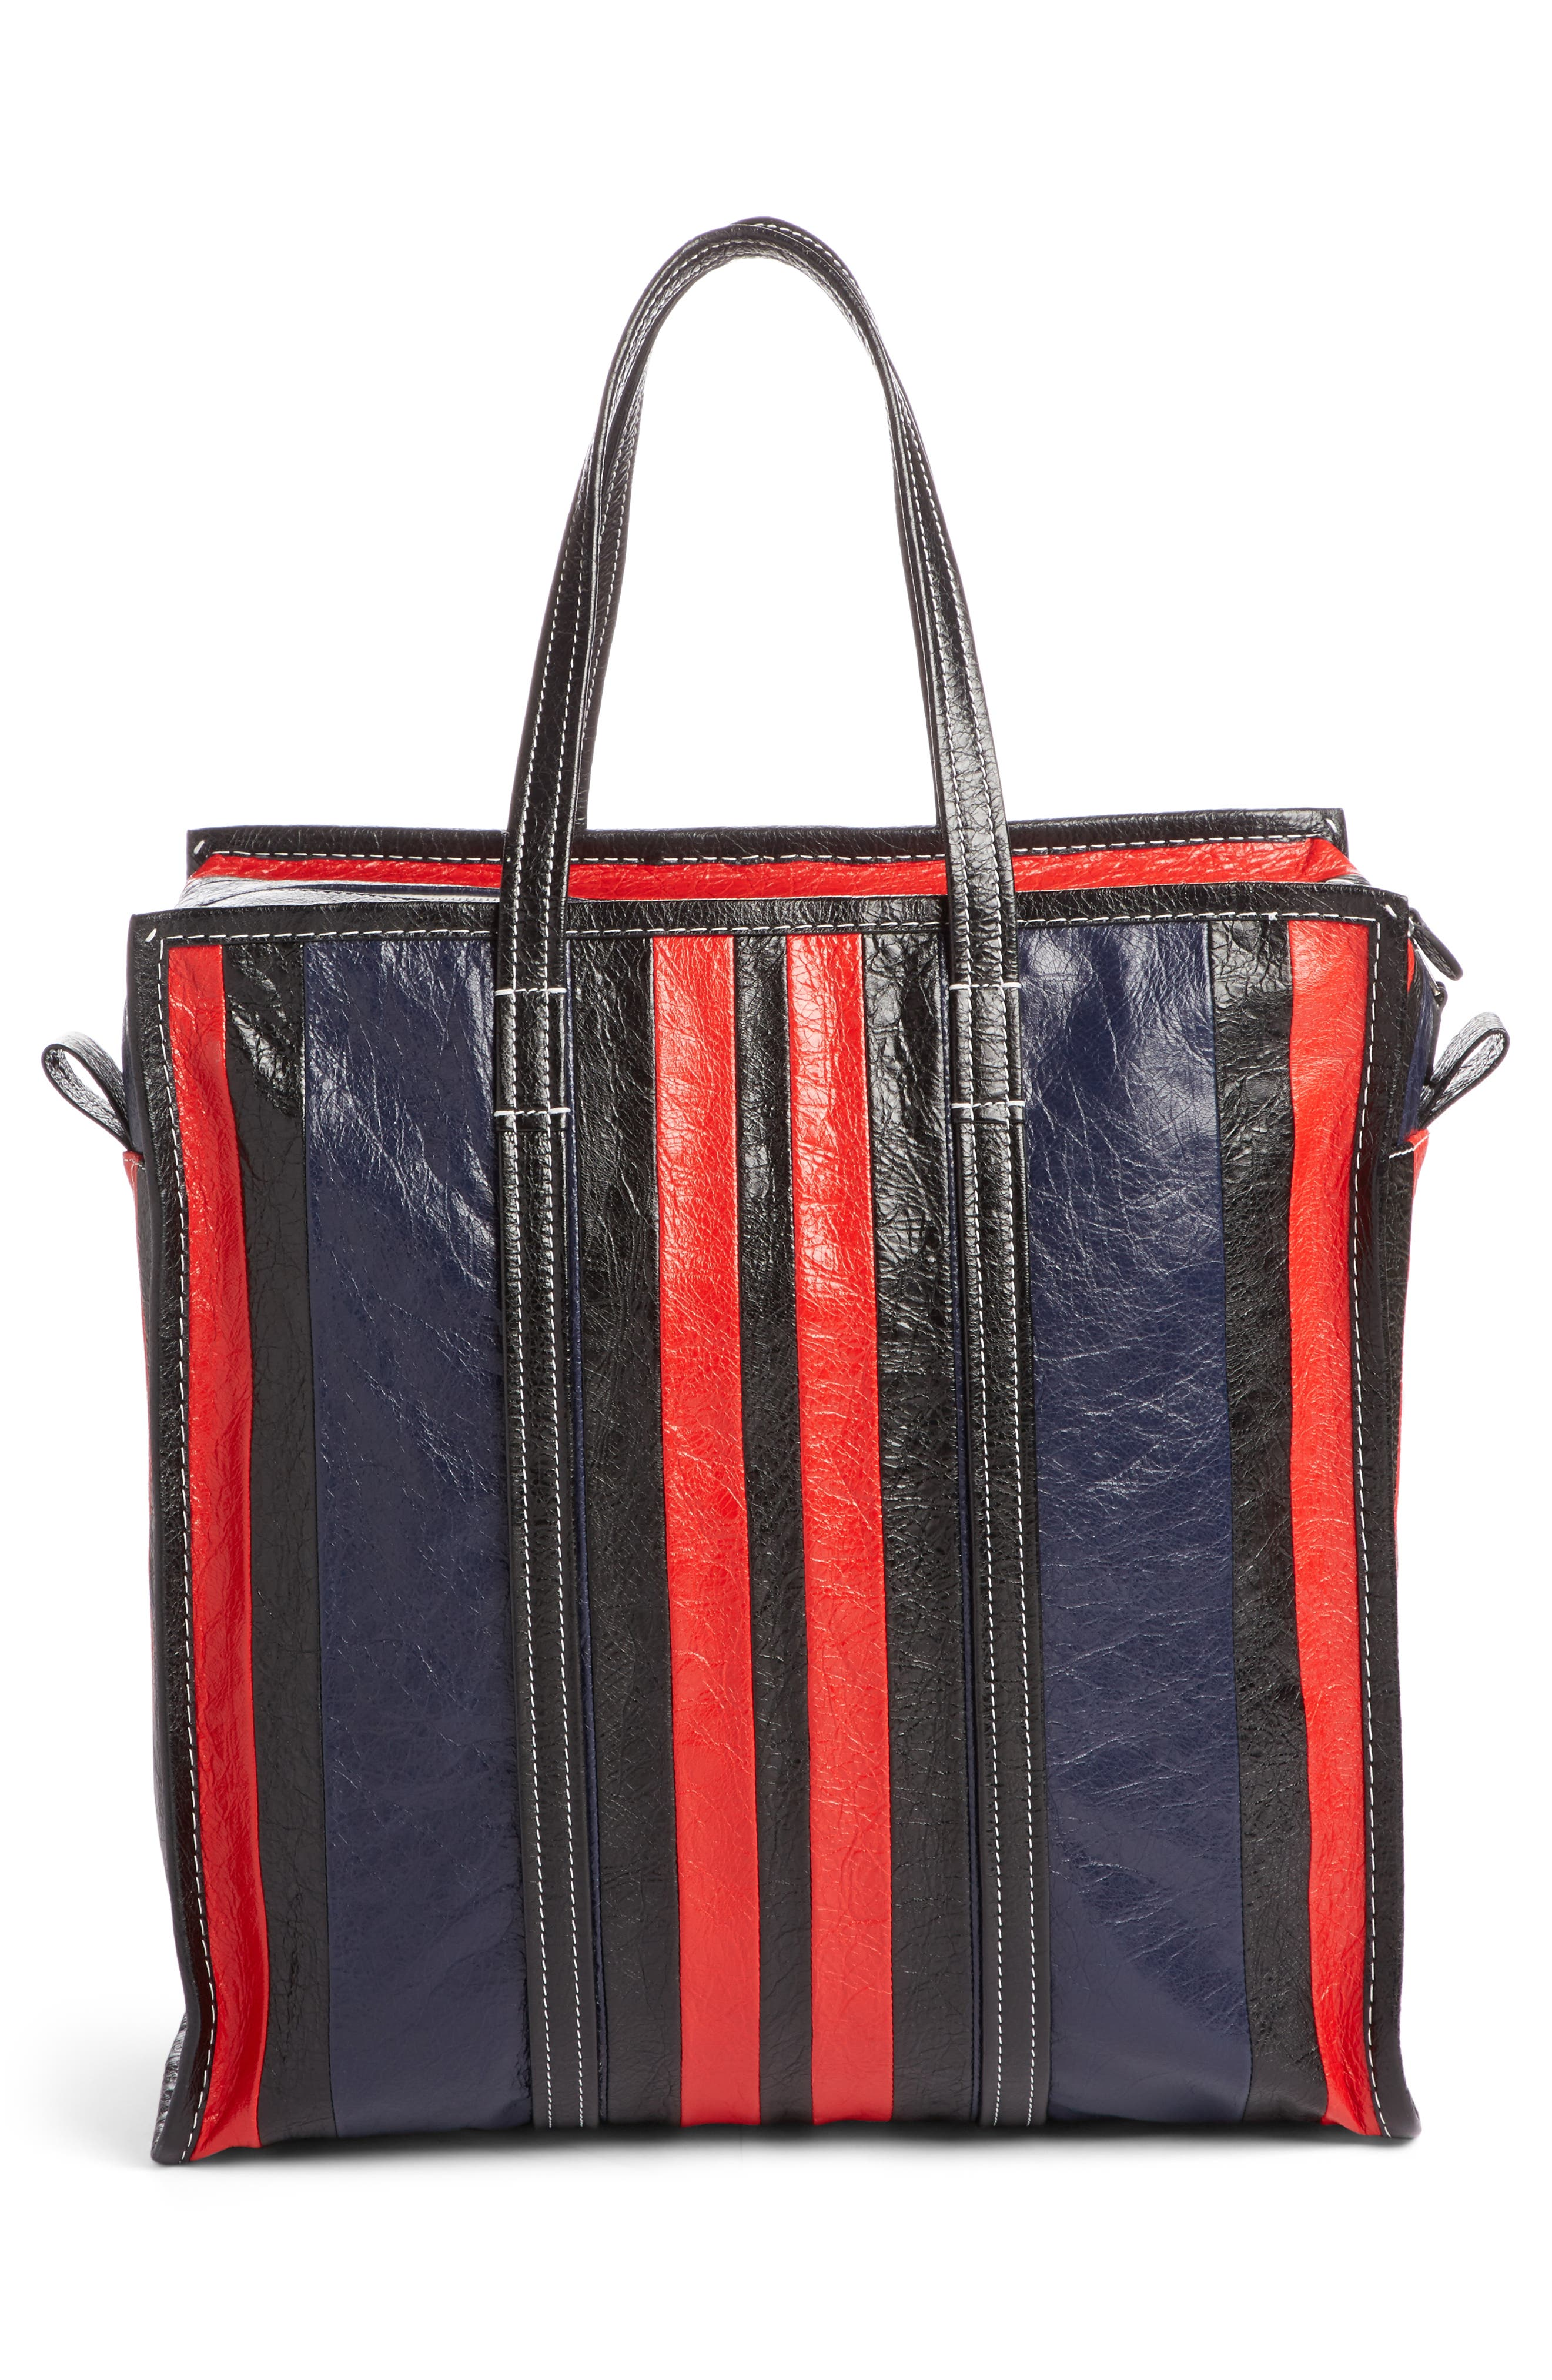 Medium Bazar Stripe Leather Tote,                             Alternate thumbnail 2, color,                             489